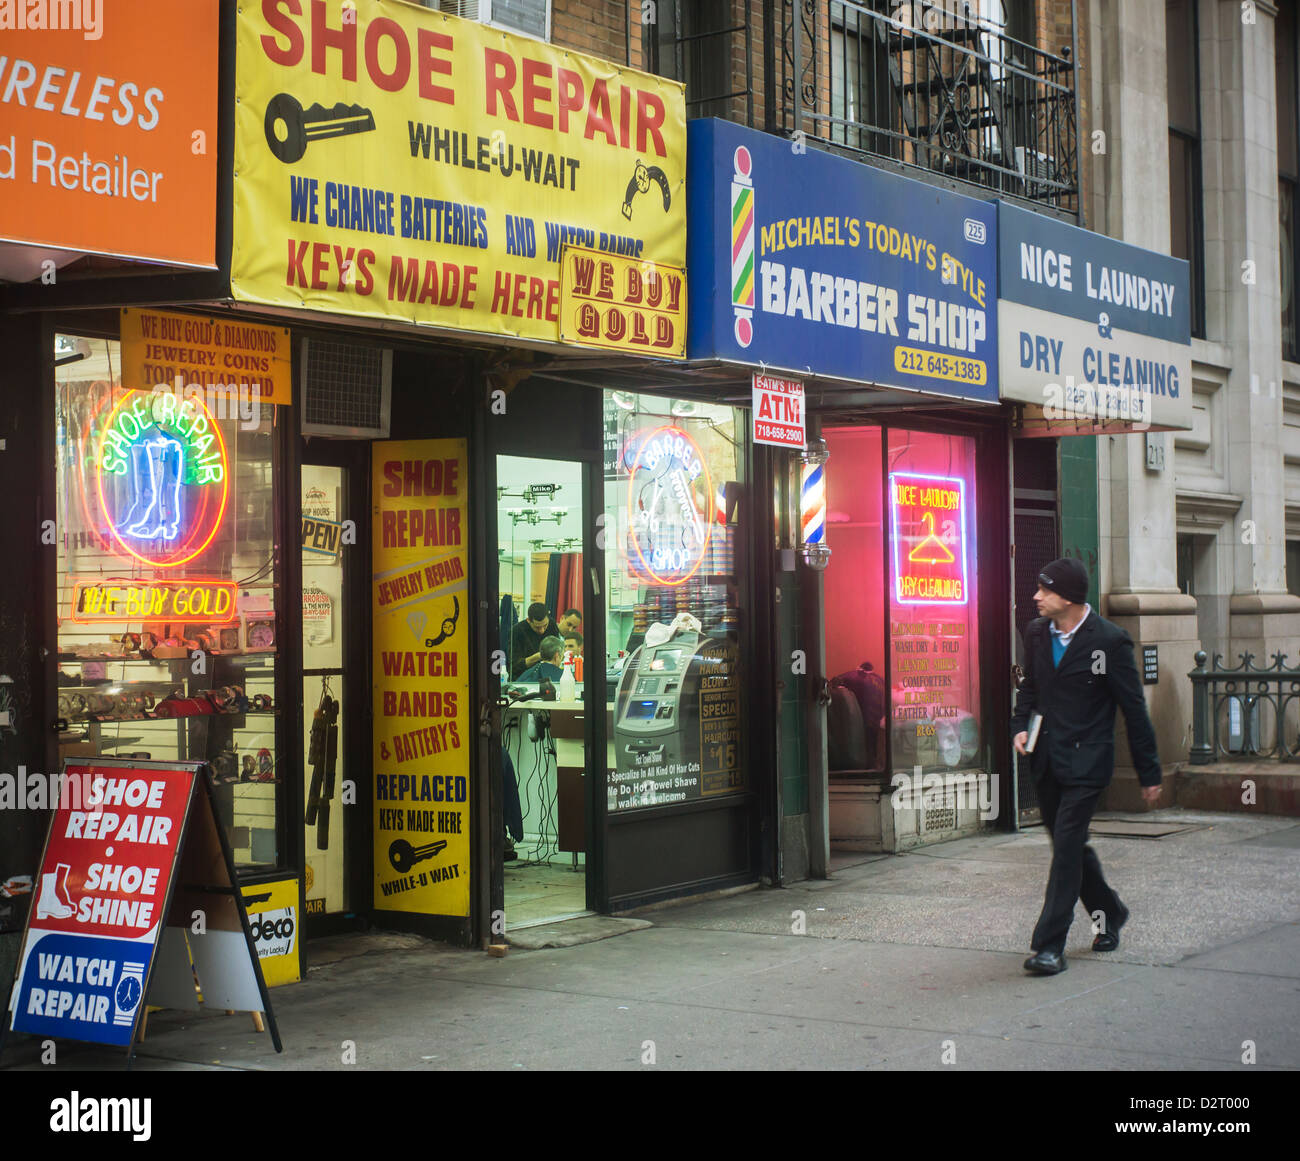 Mom and Pop small businesses, a shoe repair, a barber and a laundry, in the New York neighborhood of Chelsea - Stock Image